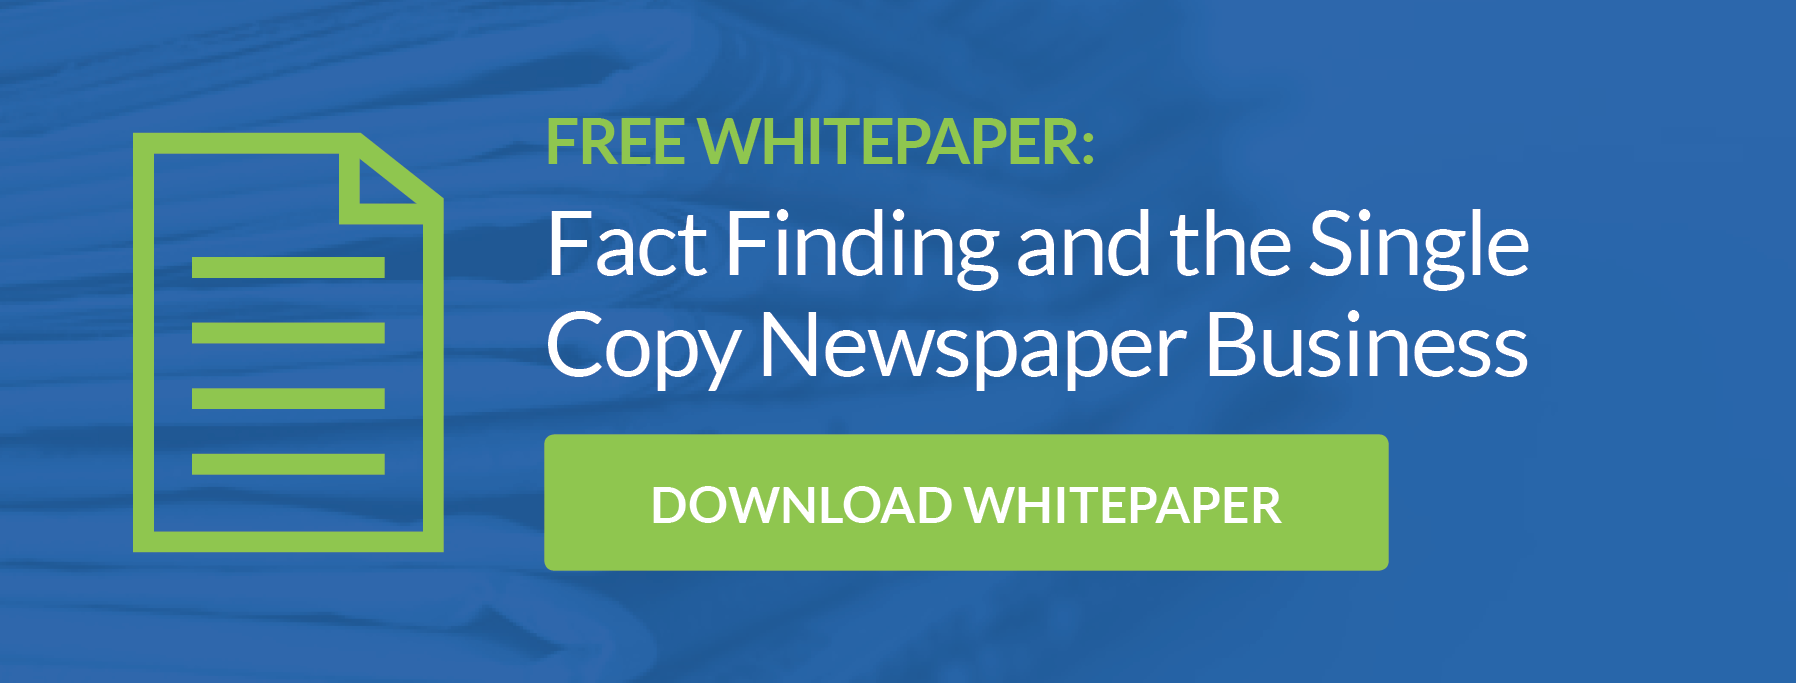 Fact finding and the Single Copy Newspaper Business